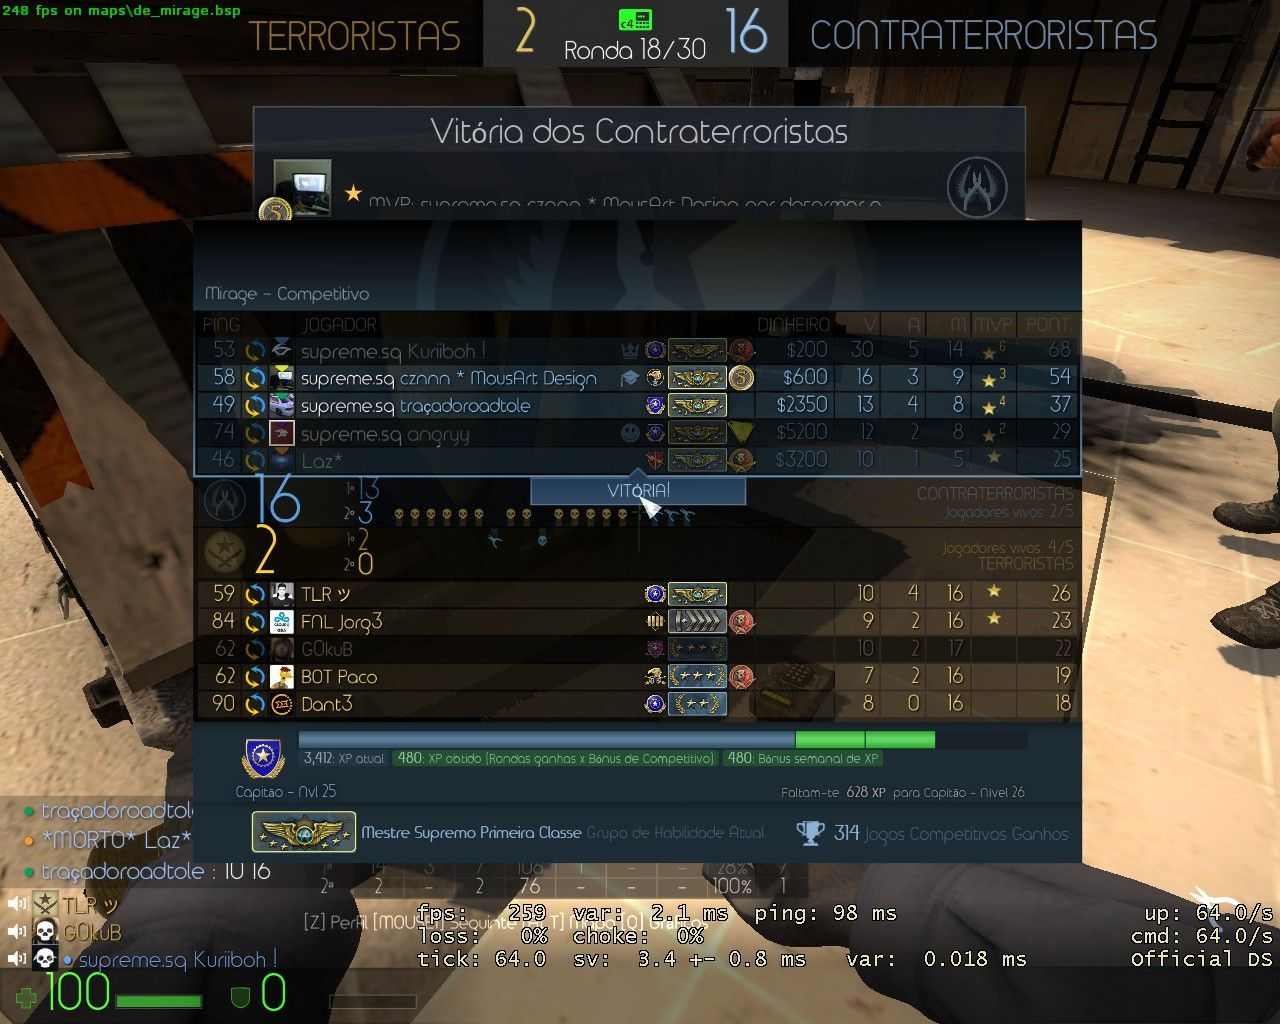 Matchmaking ranks are fair? Old screenshot #games #globaloffensive